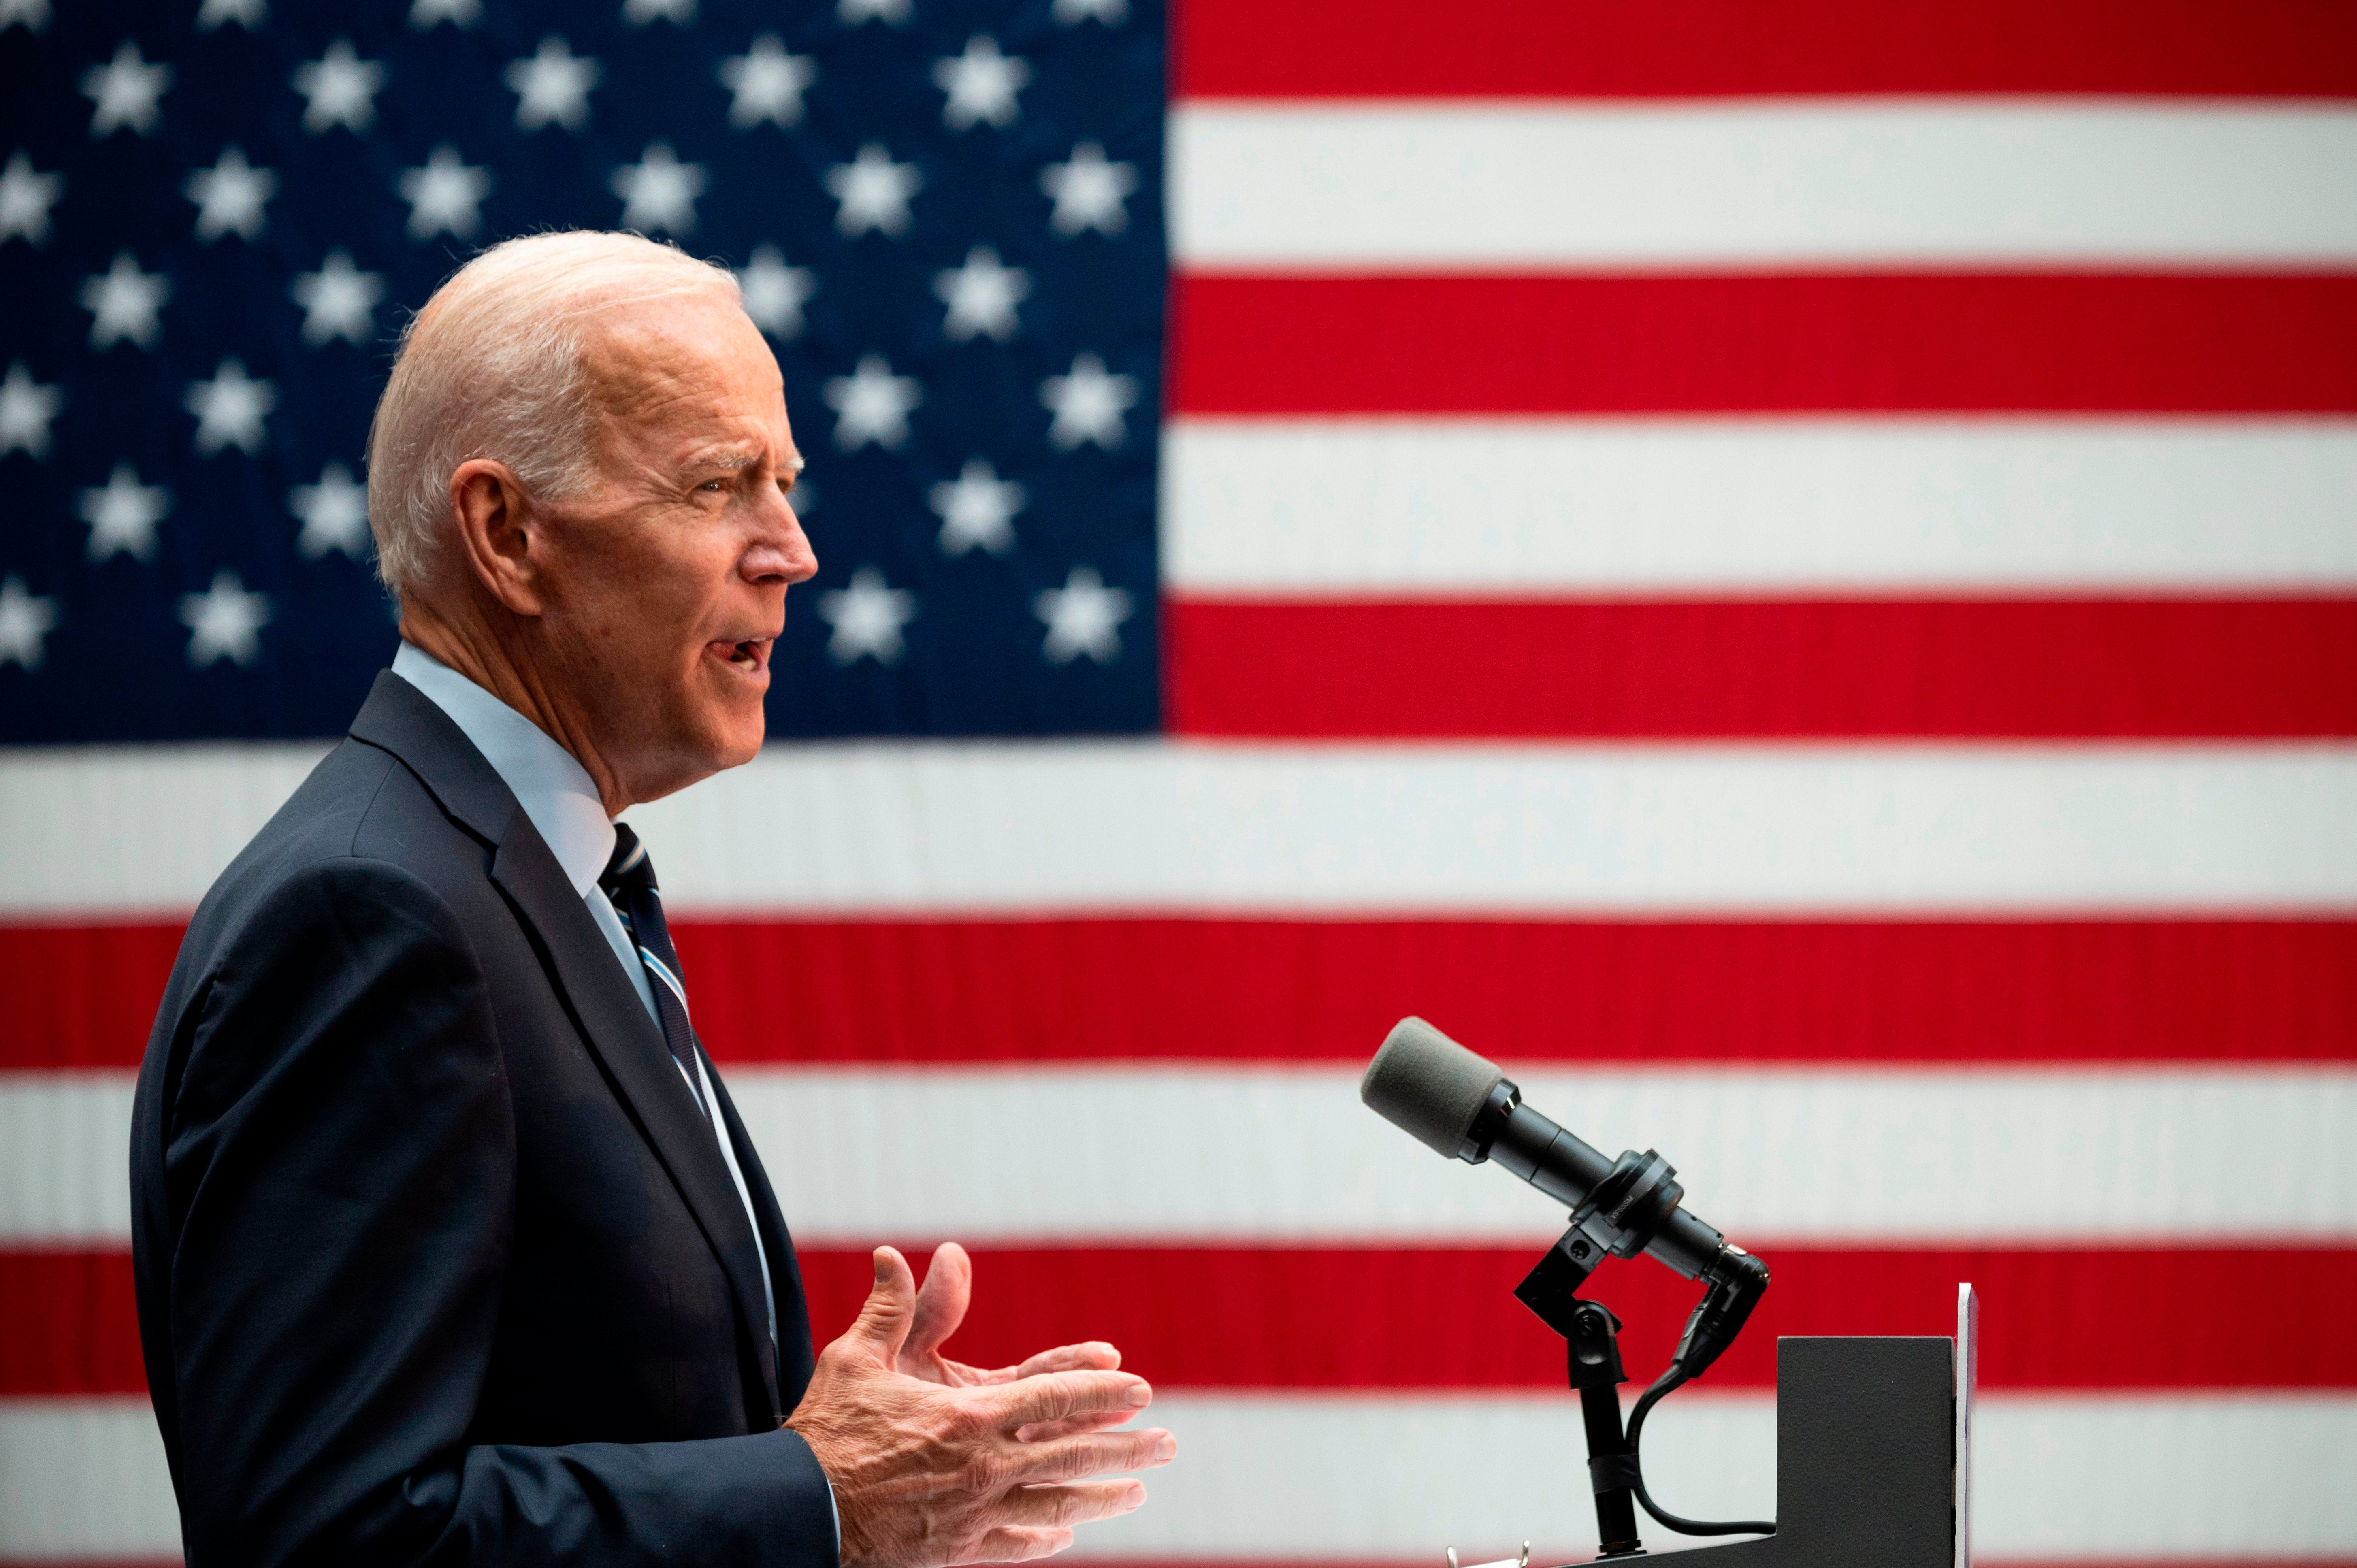 Here's How Scientists Want Biden to Take on Climate Change